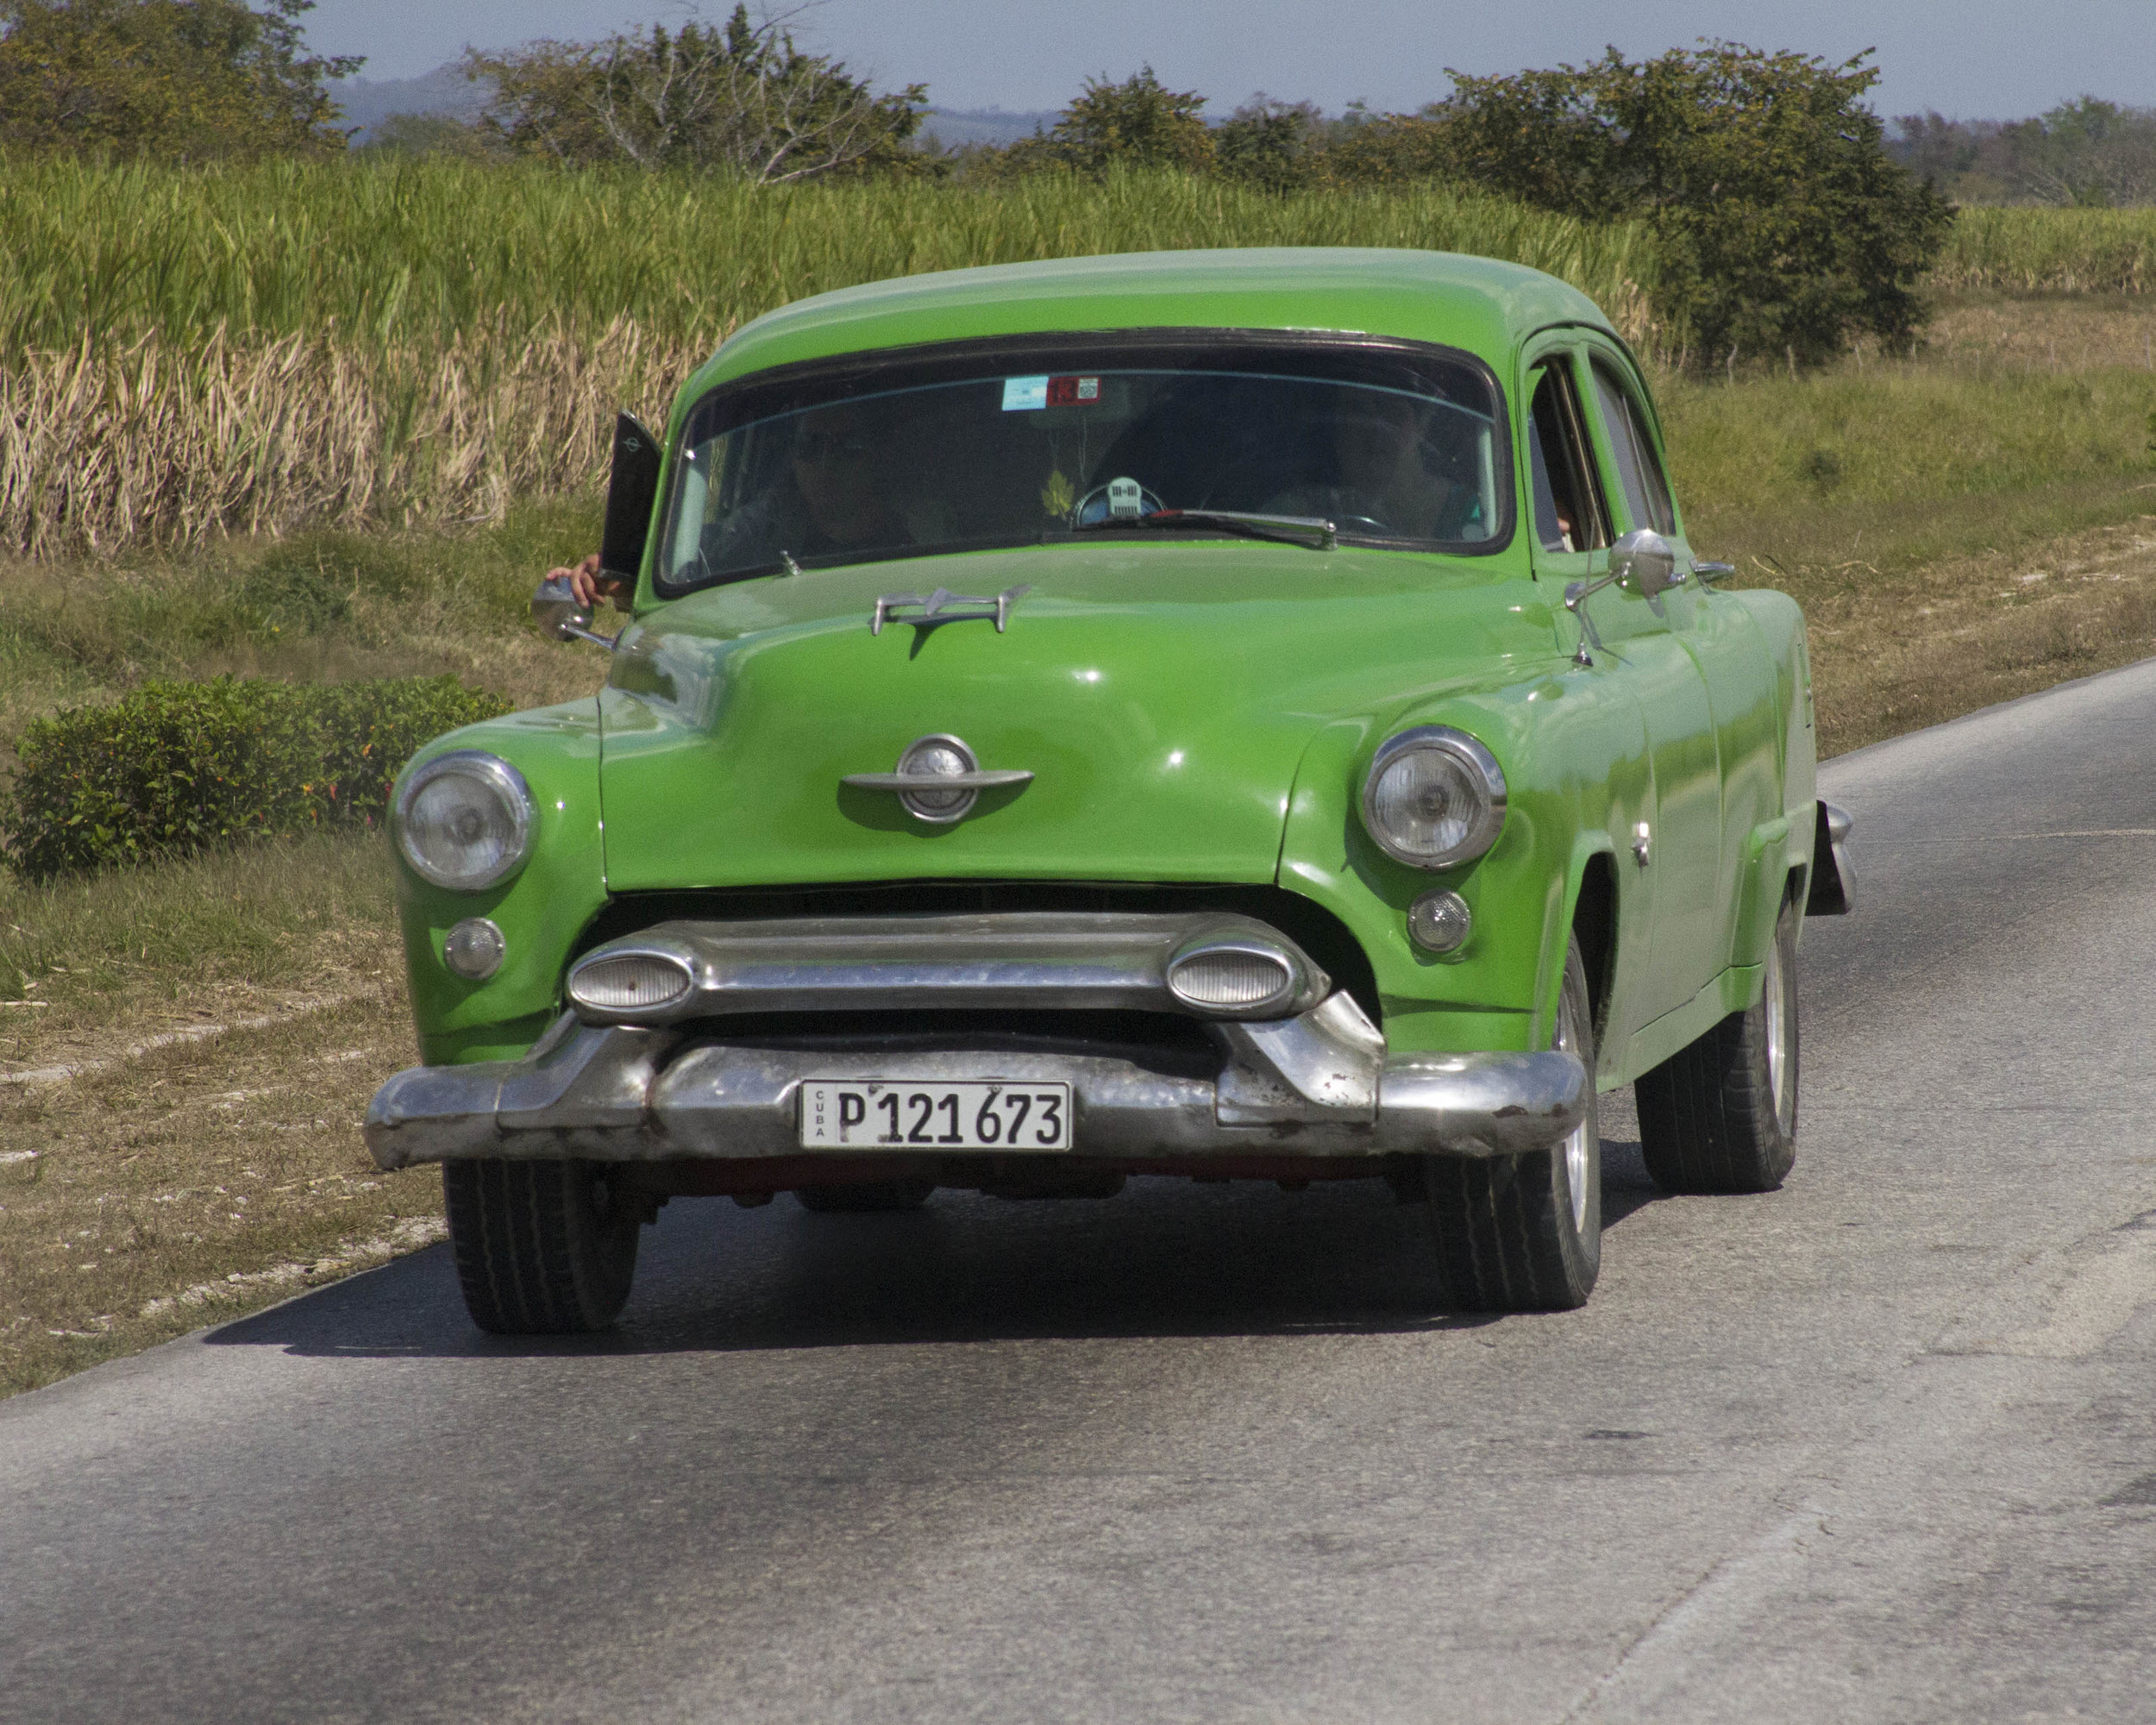 Old Car in Cuba - Dixie Sommers